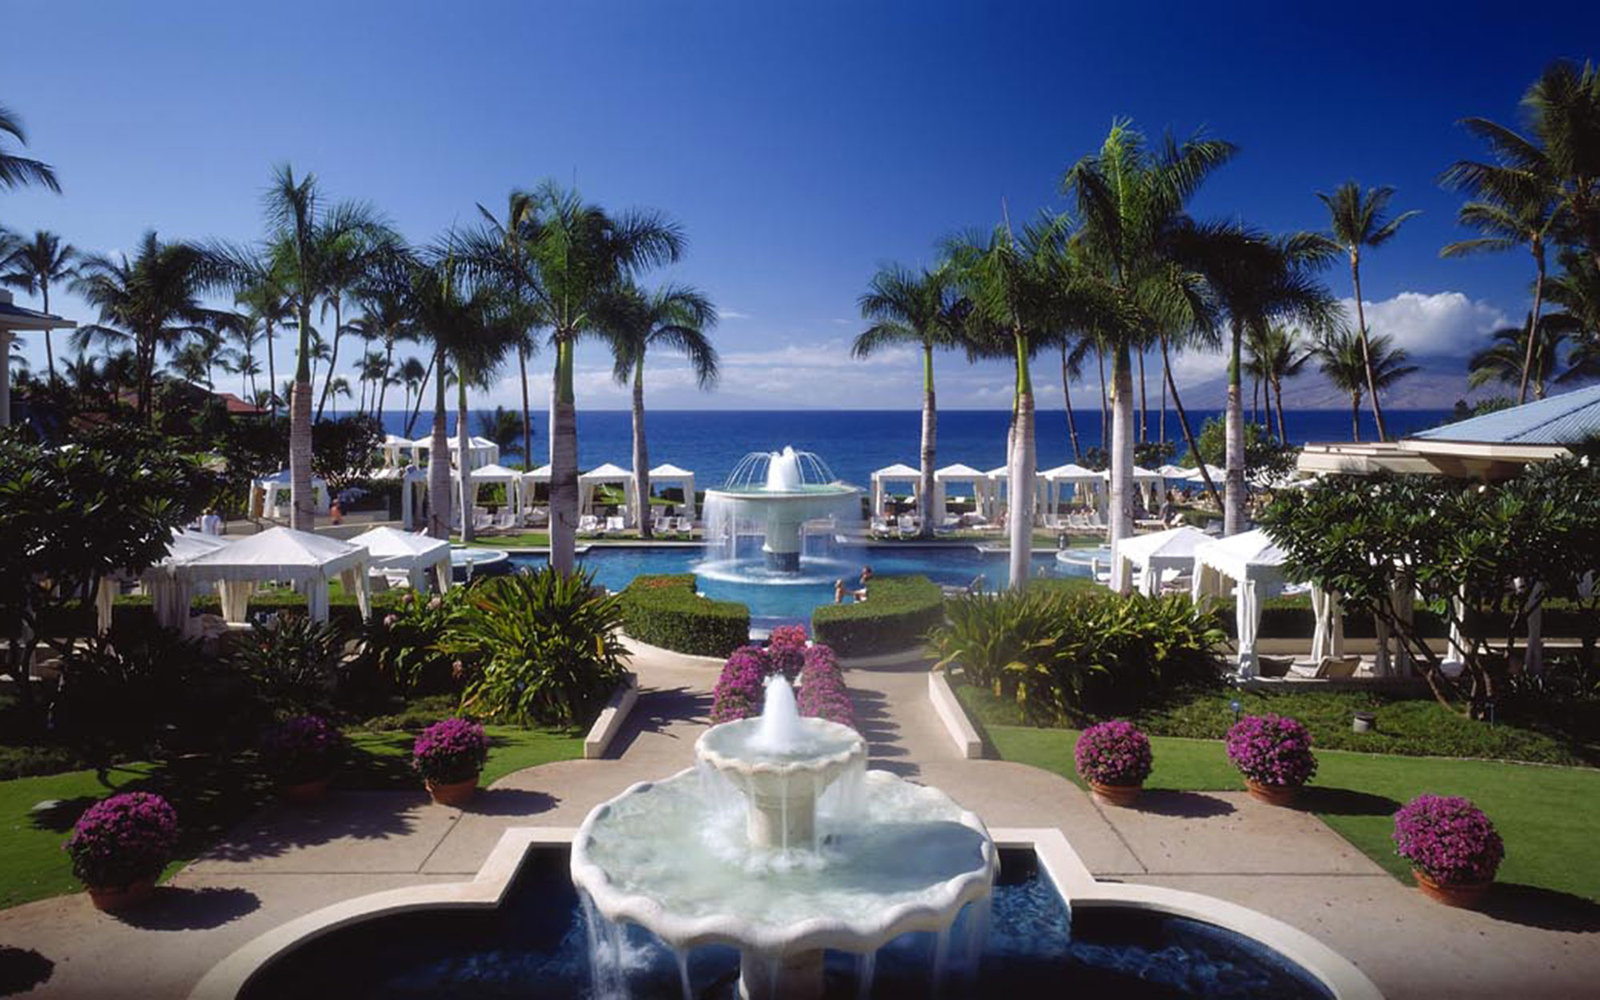 No. 5: Four Seasons Resort Maui at Wailea